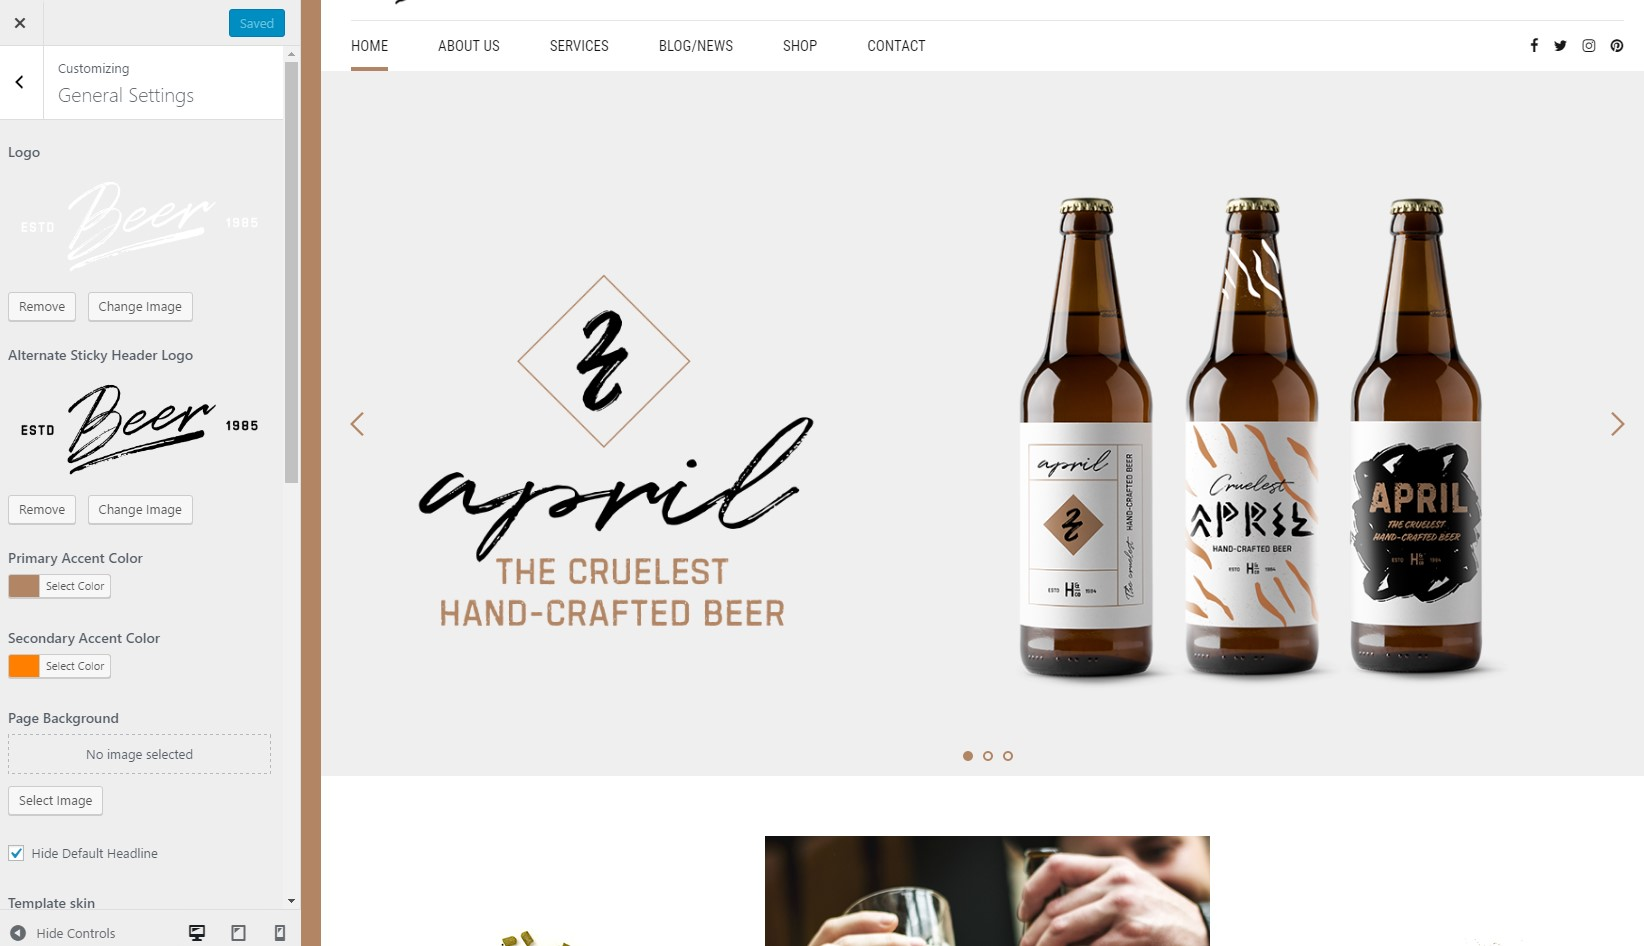 https://documentation.bold-themes.com/craft-beer/wp-content/uploads/sites/17/2017/06/accent-color.jpg